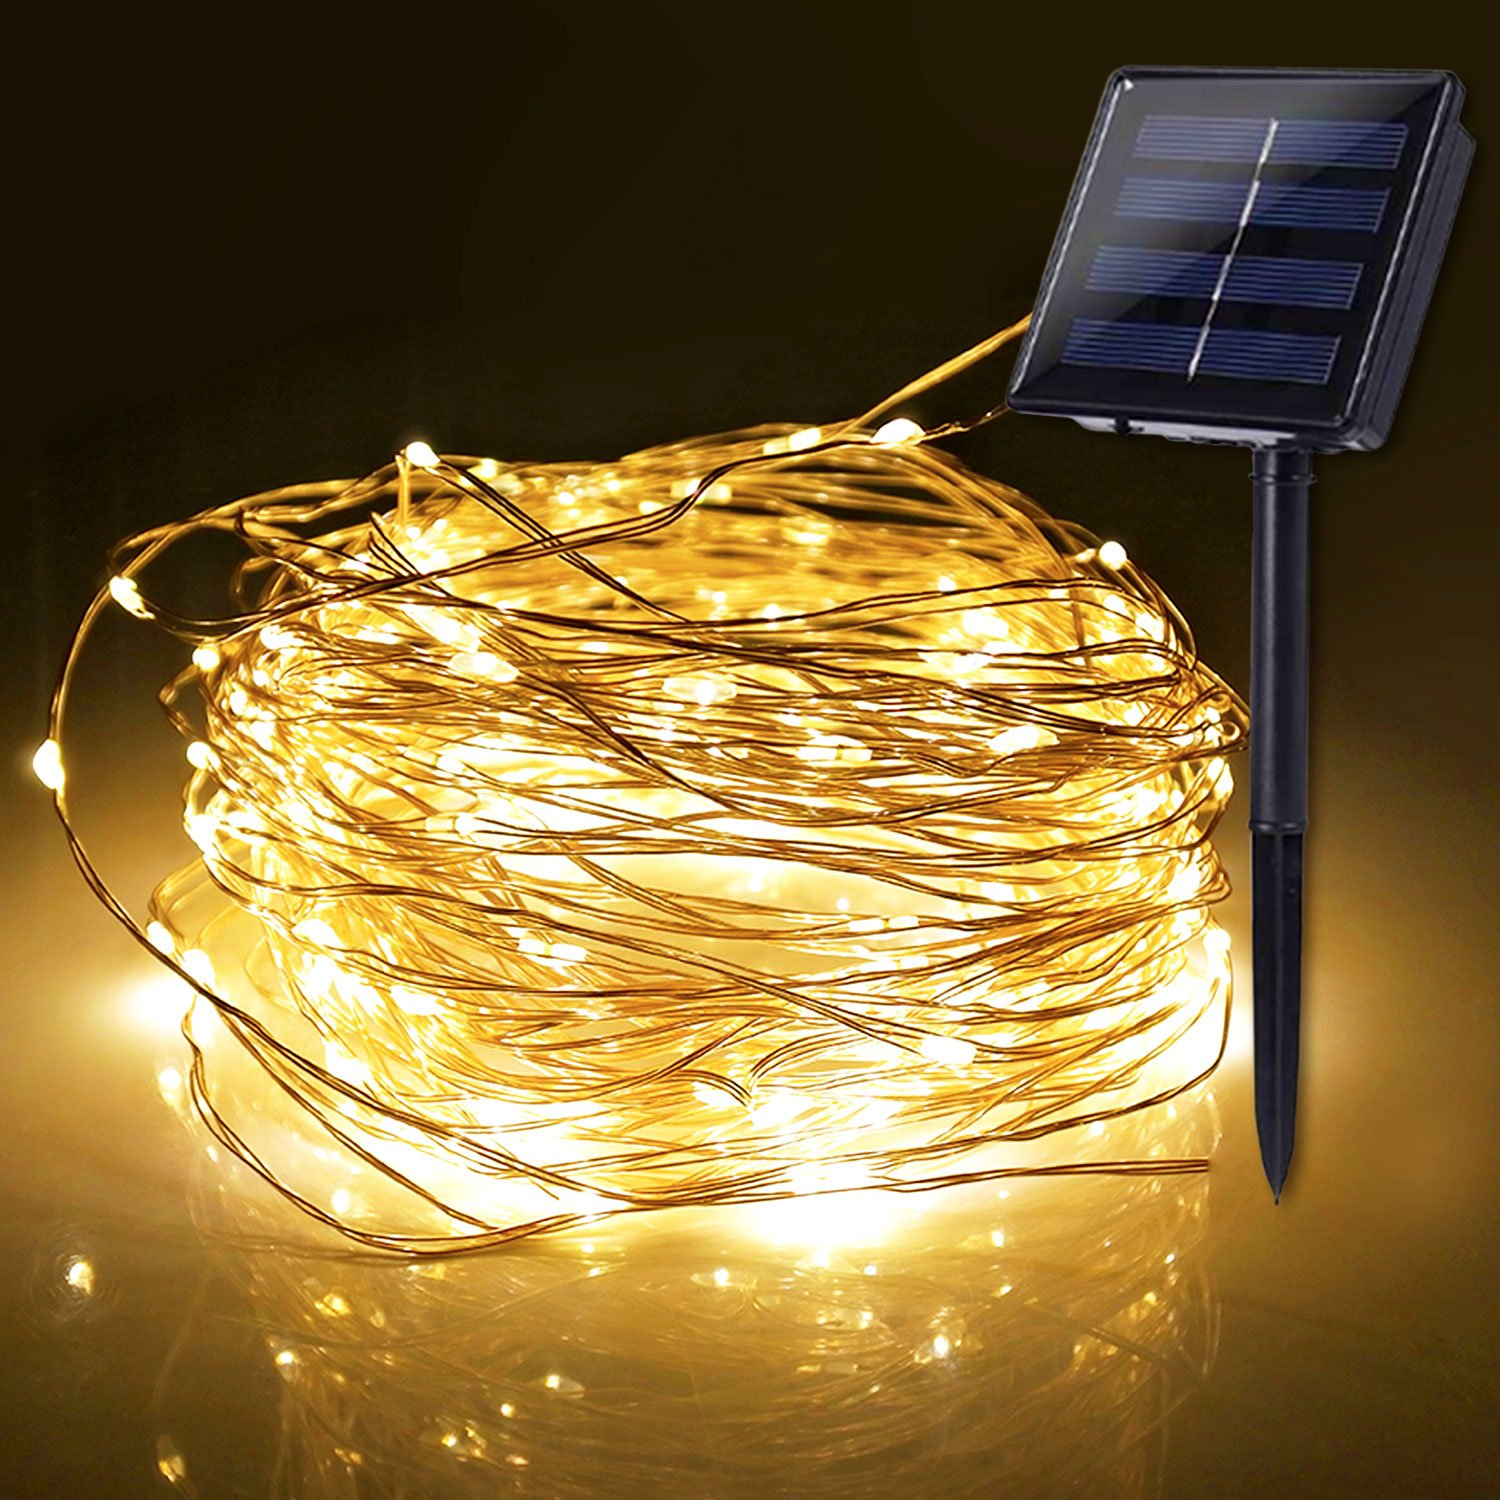 ETHINK 200 LED 65.5ft Indoor, Outdoor 8 Modes Solar Powered Waterproof Fairy String Copper Wire Lights for Christmas, Bedroom, Party, Patio, Wedding, Warm White (200LED) by ETHINK